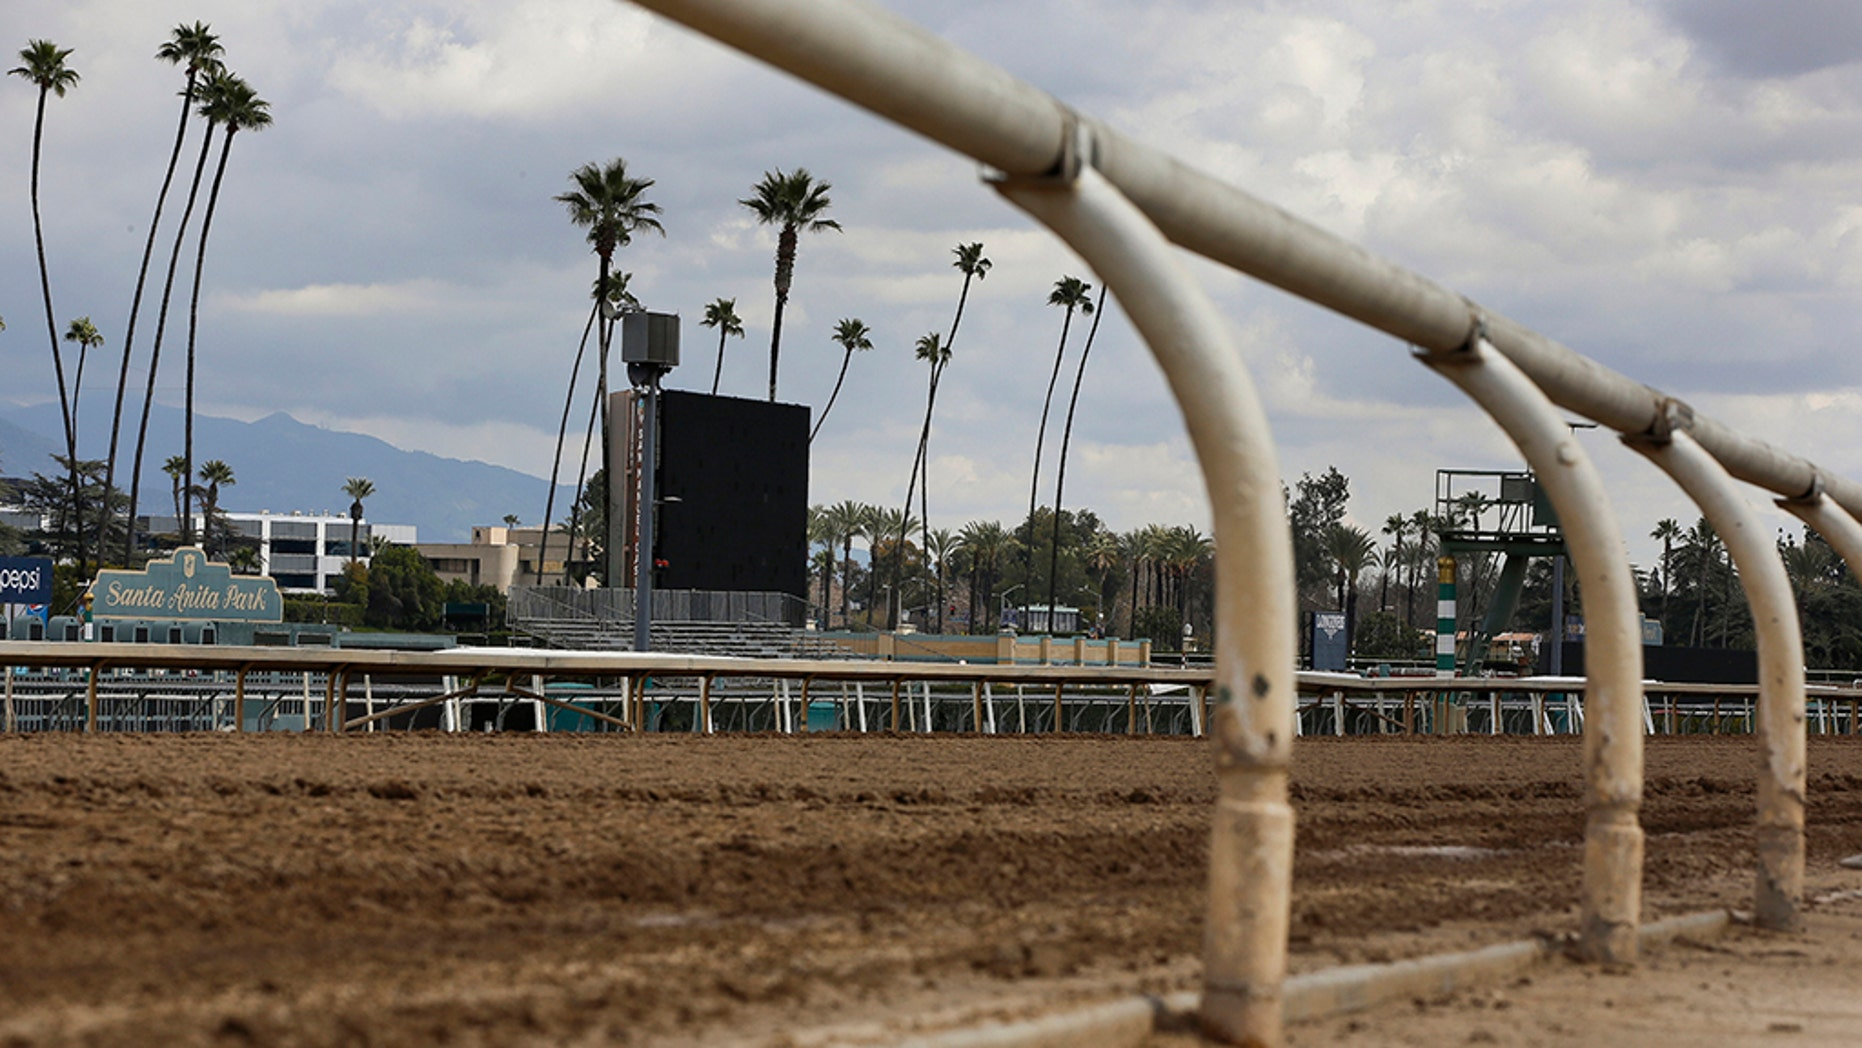 Photo shows the empty home stretch at Santa Anita Park in Arcadia, Calif, where racing has been canceled as the track deals an alarming number of horse deaths, now at 22.  (AP Photo/Damian Dovarganes, File)